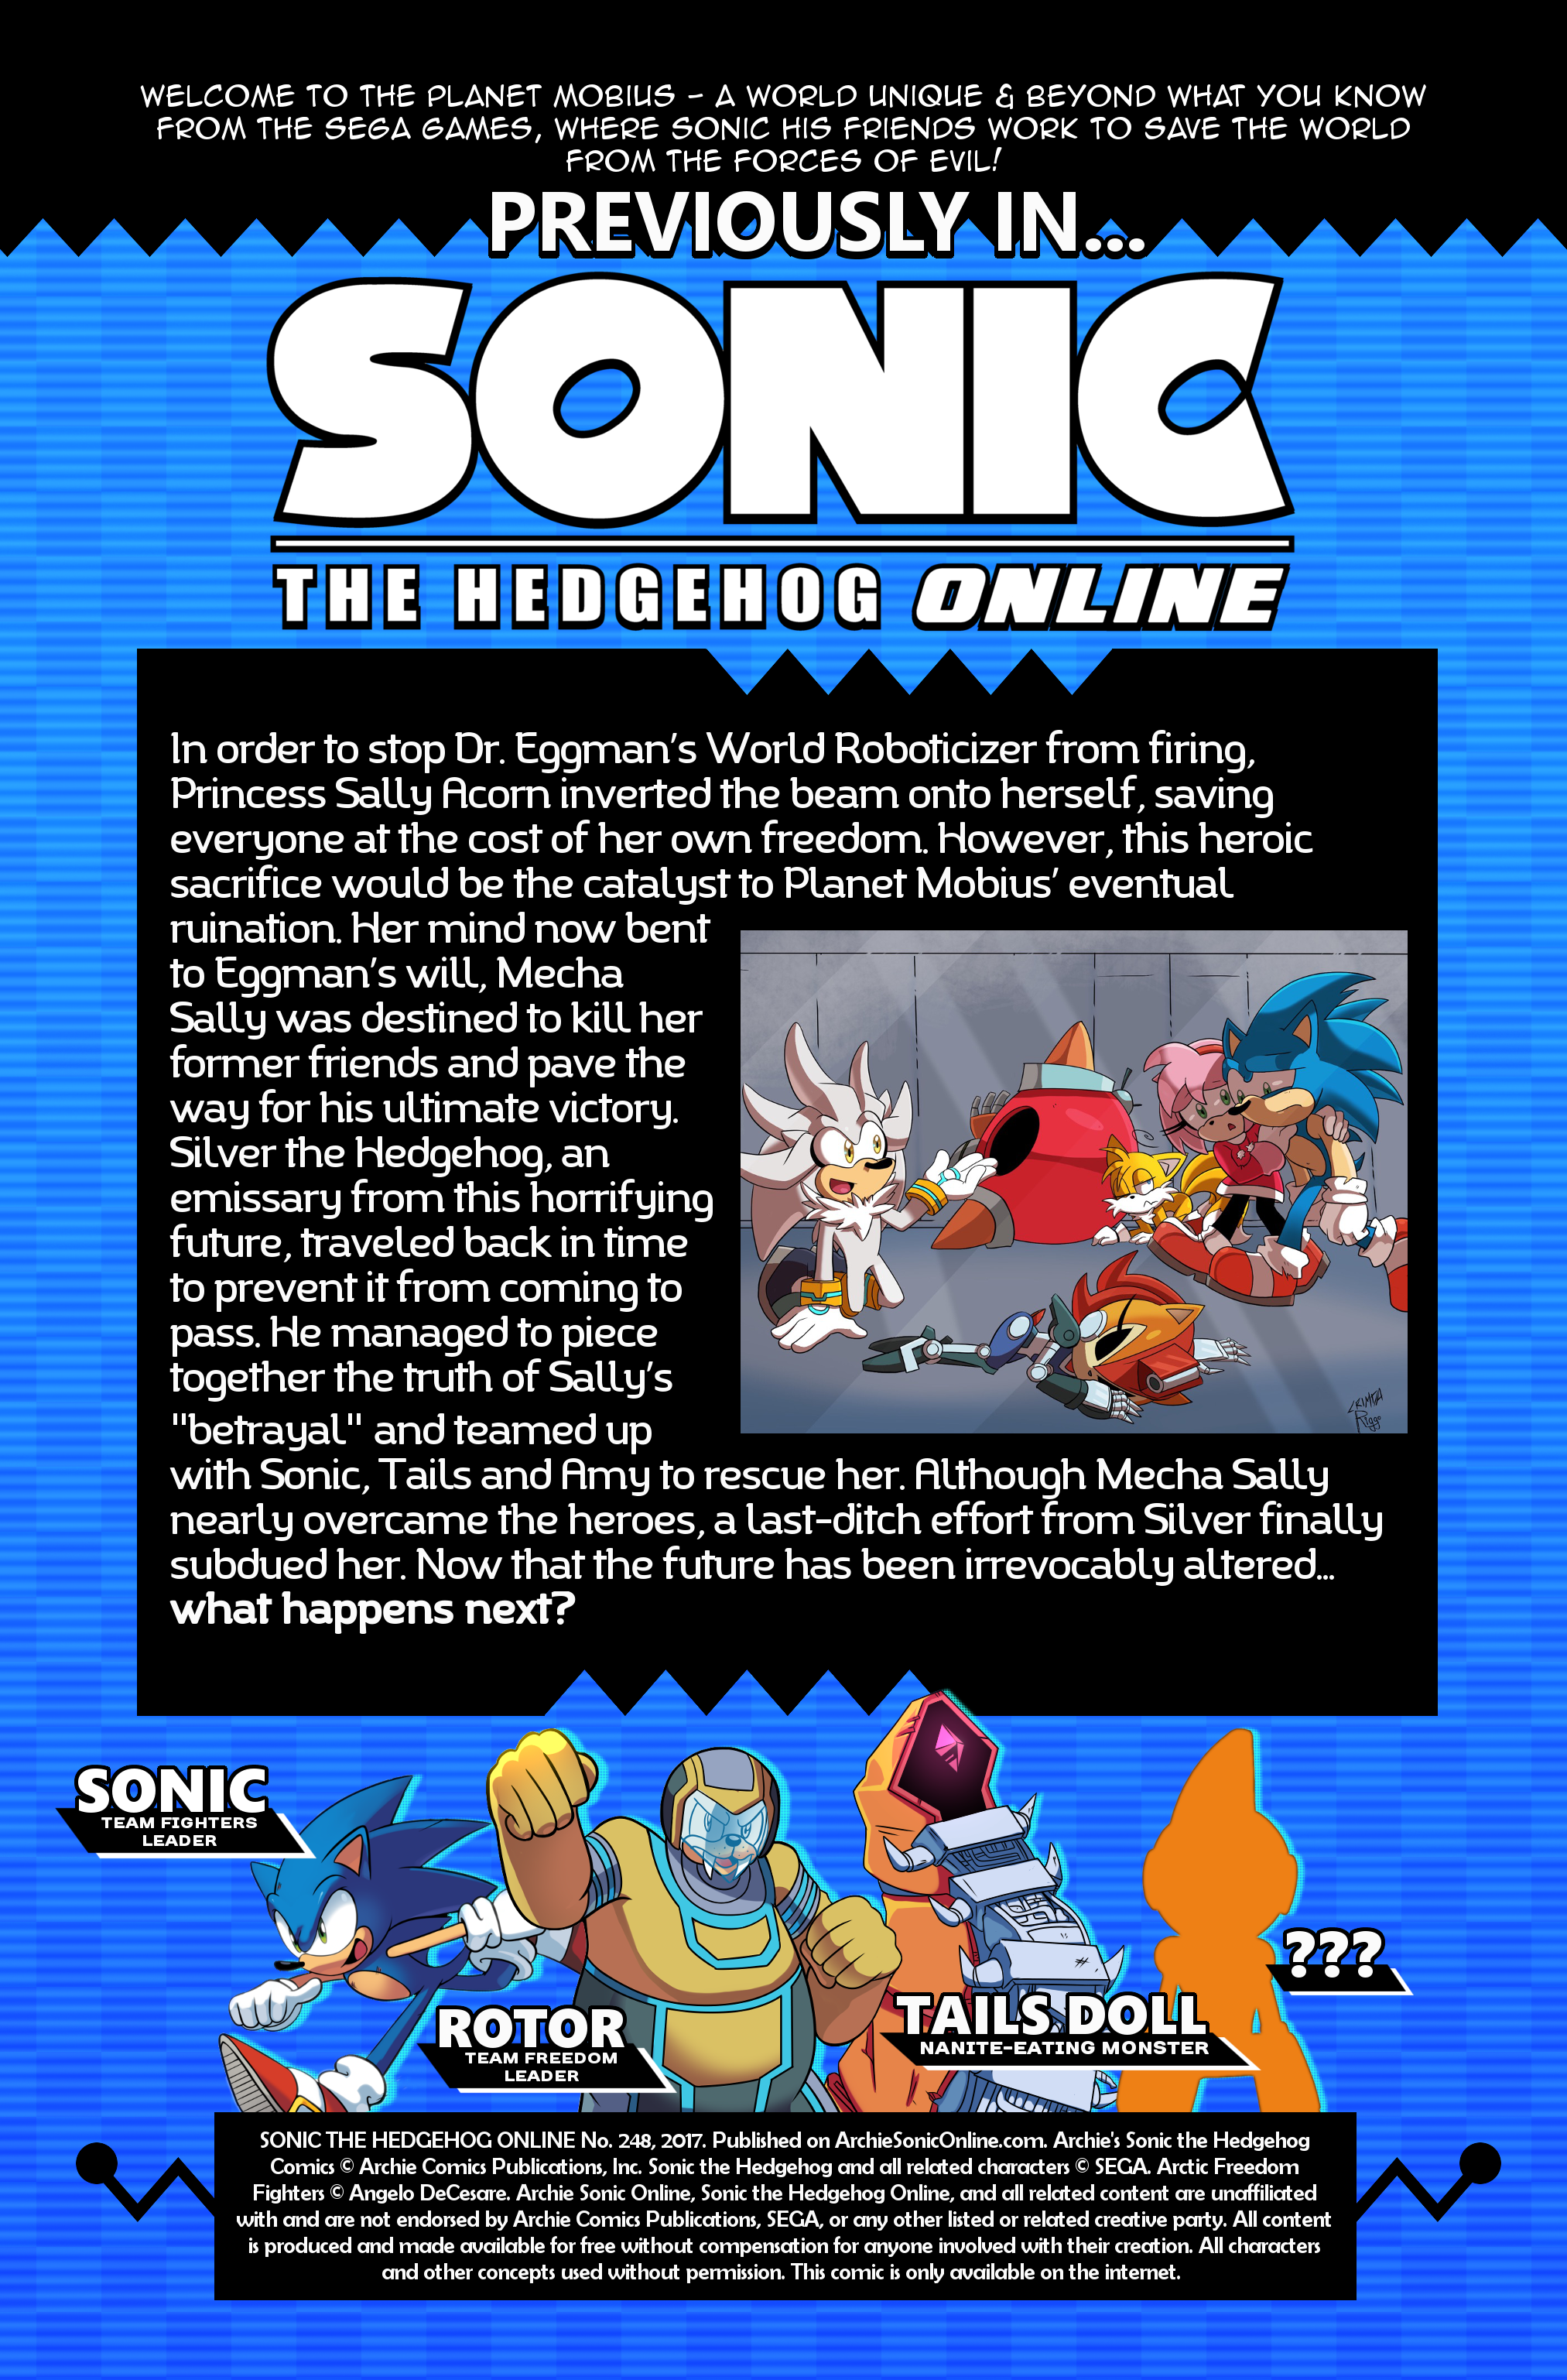 Sonic the Hedgehog Online #248 – Recap